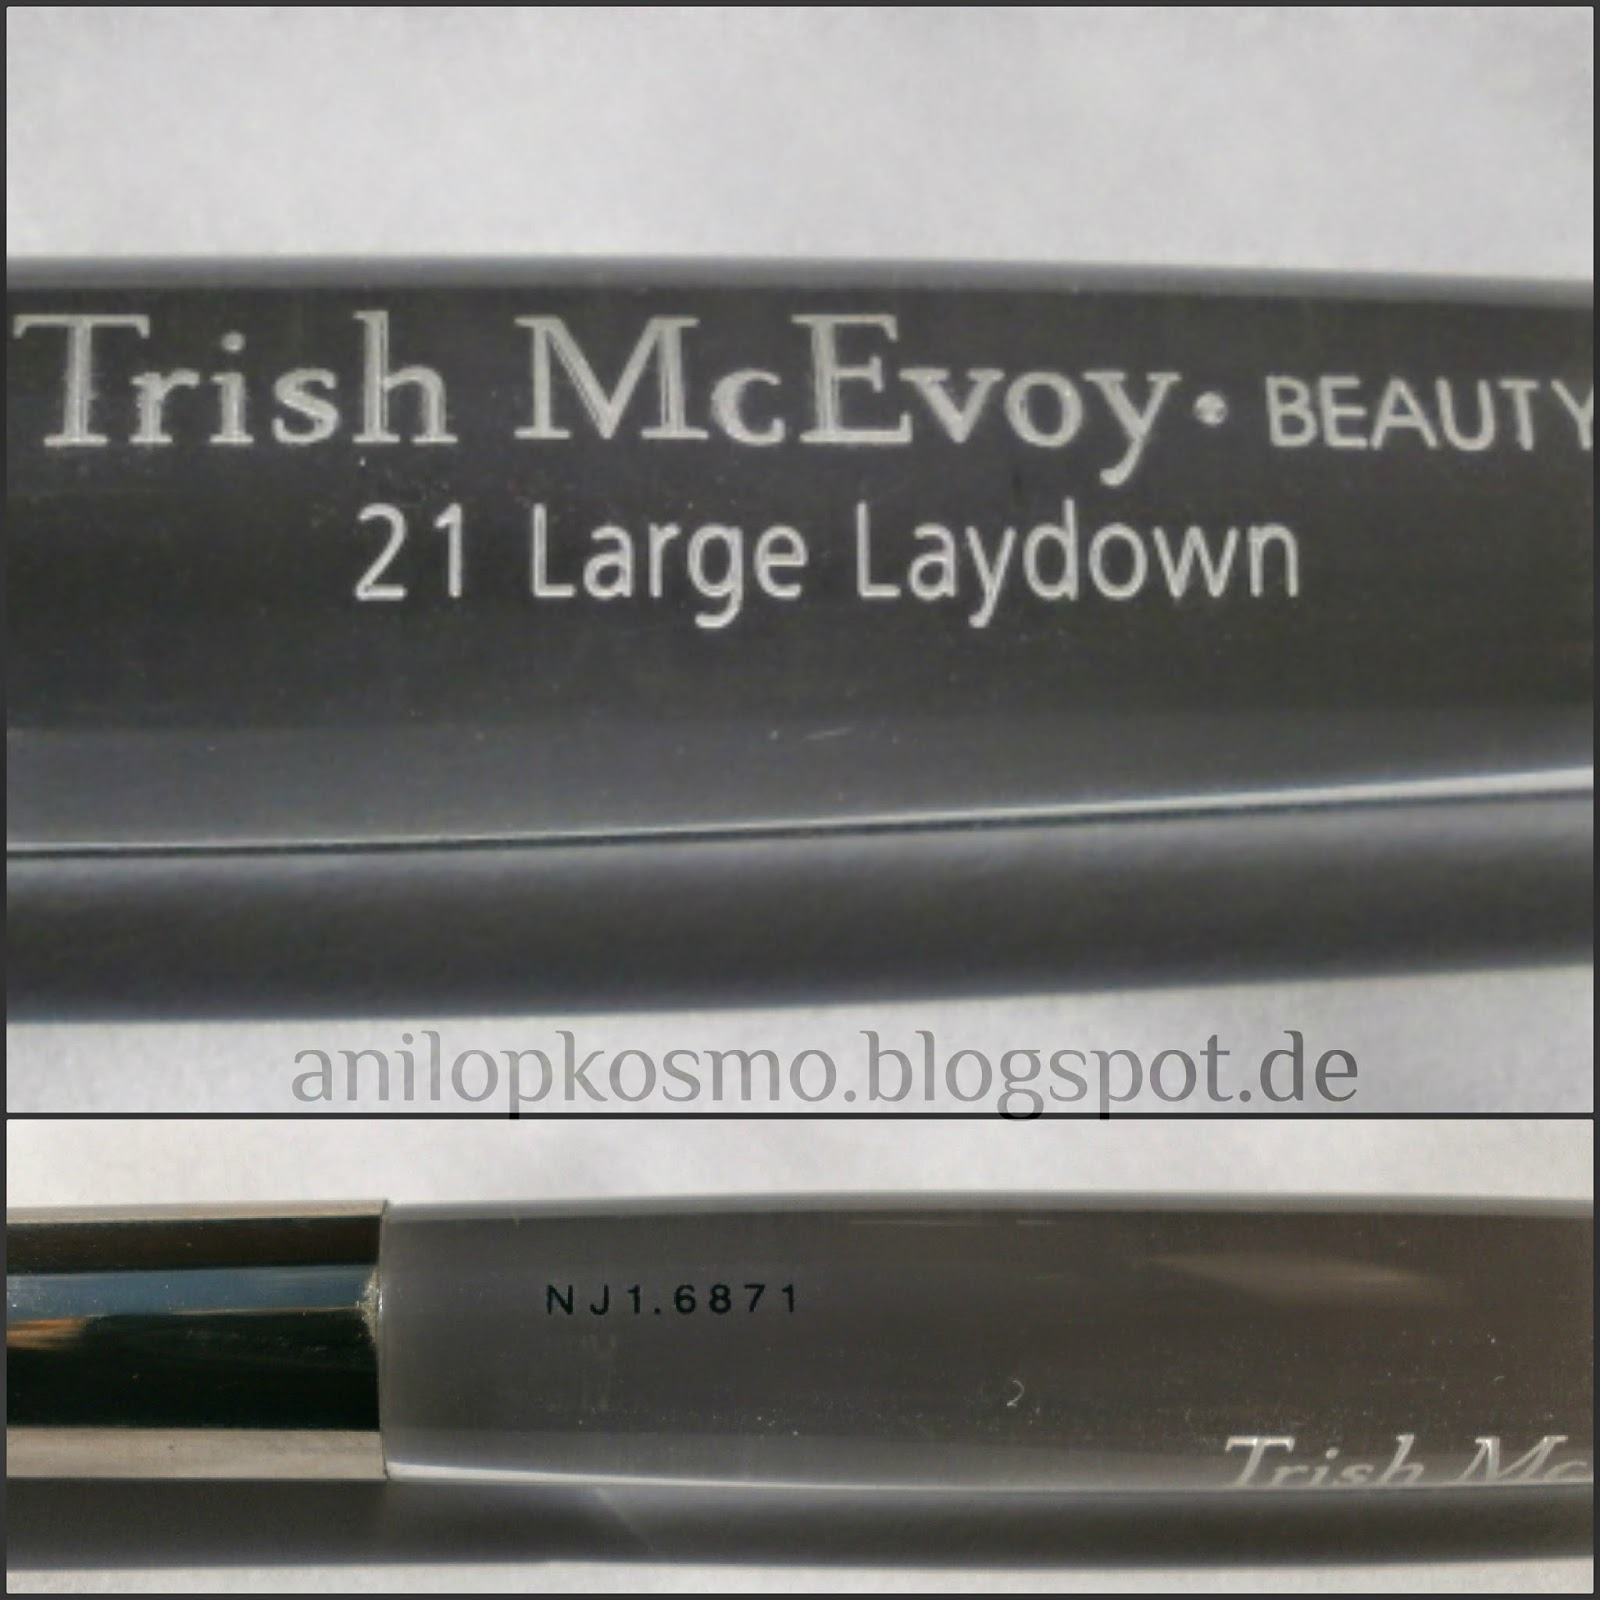 Trish McEvoy № 21 Large Laydown, отзыв